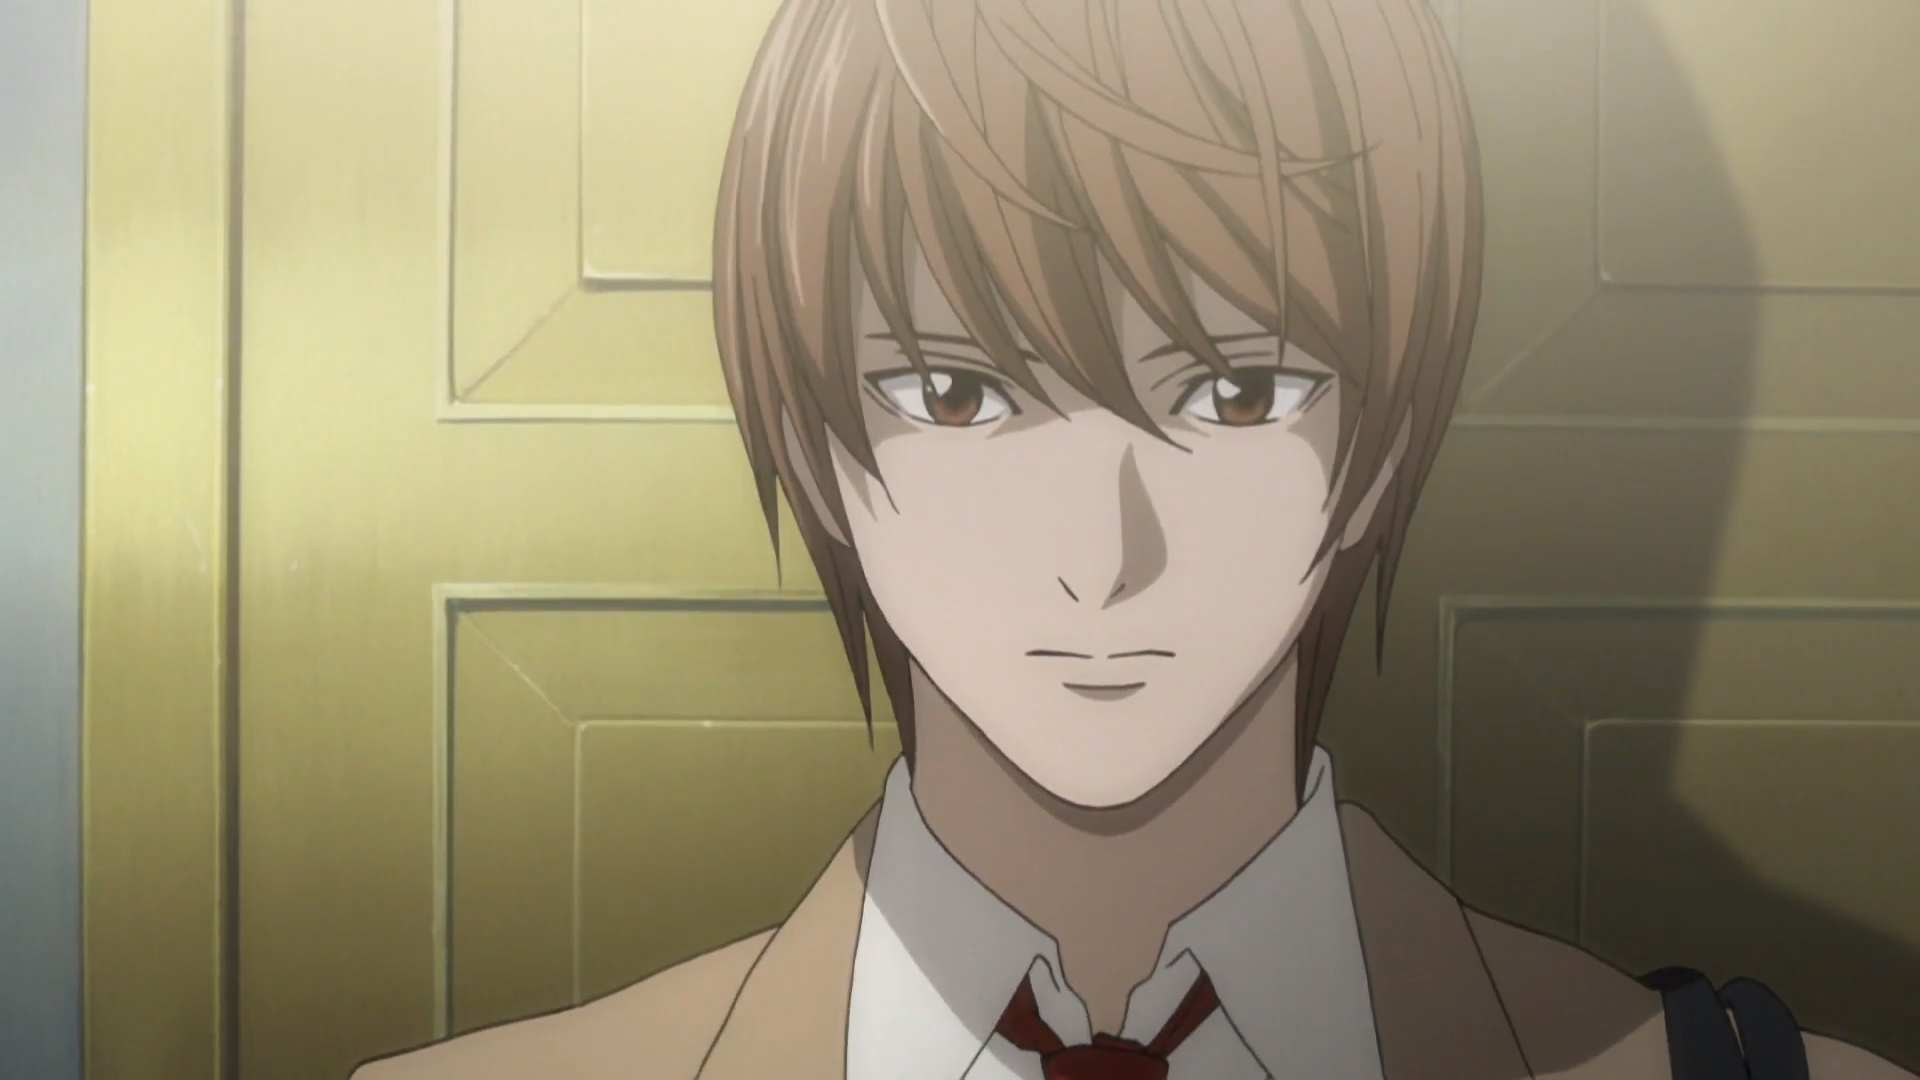 Archivo:Light yagami.jpg